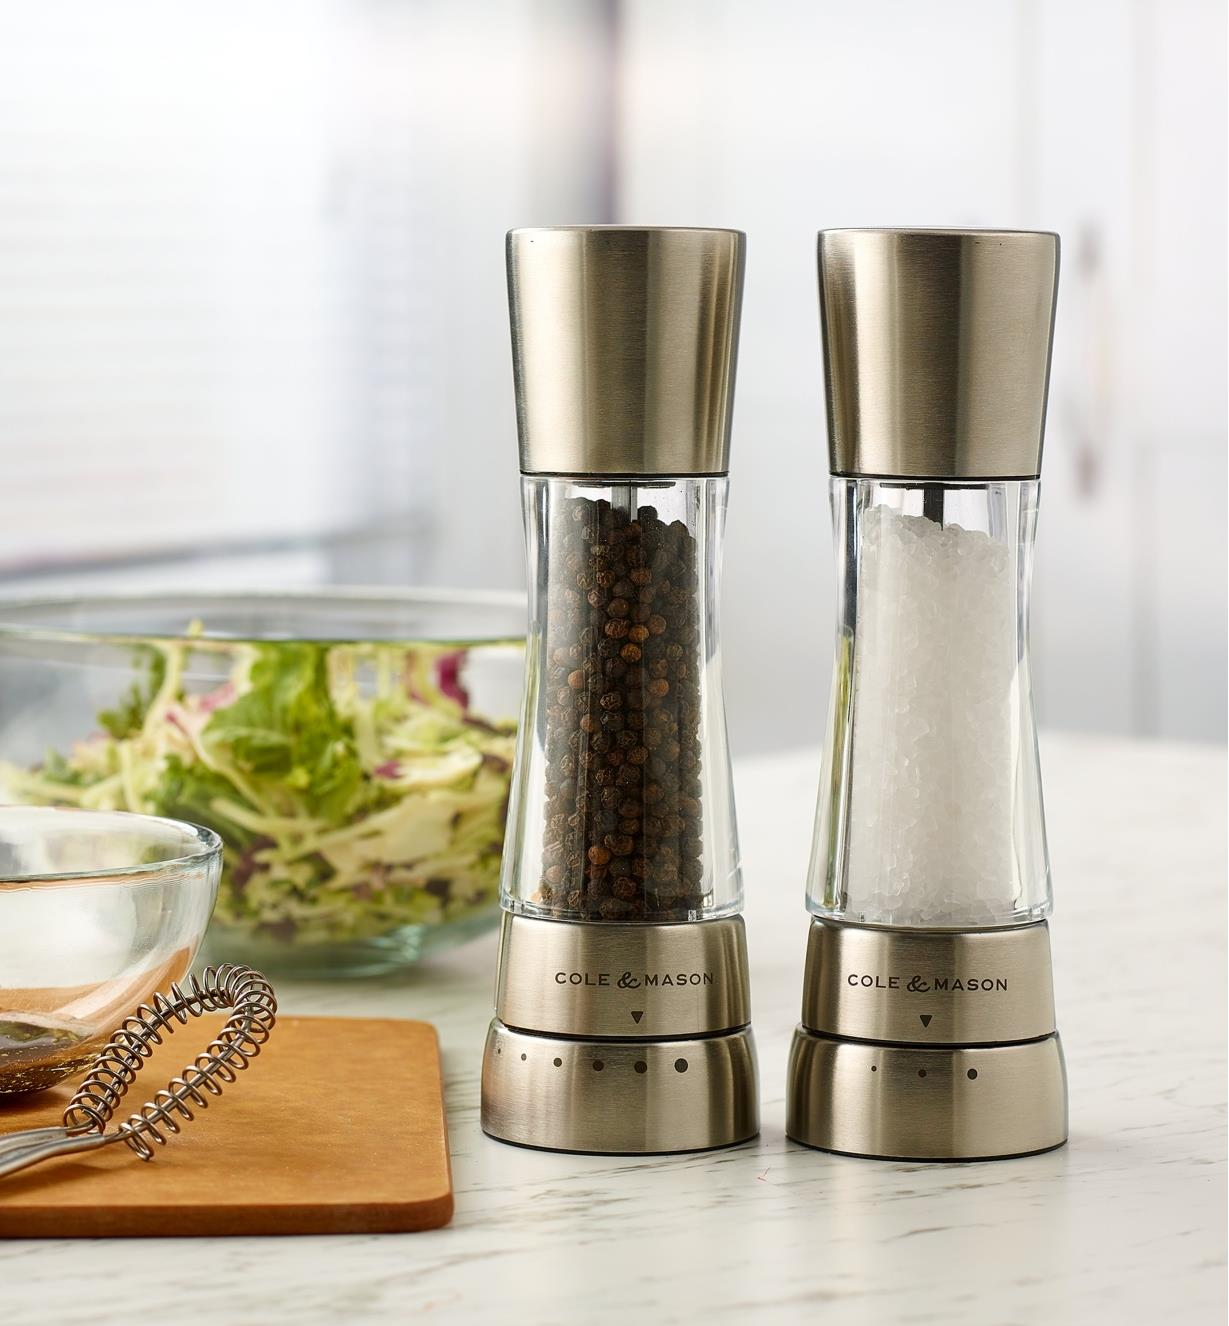 A set of Cole & Mason salt and pepper mills standing on a marble countertop next to a bowl of salad